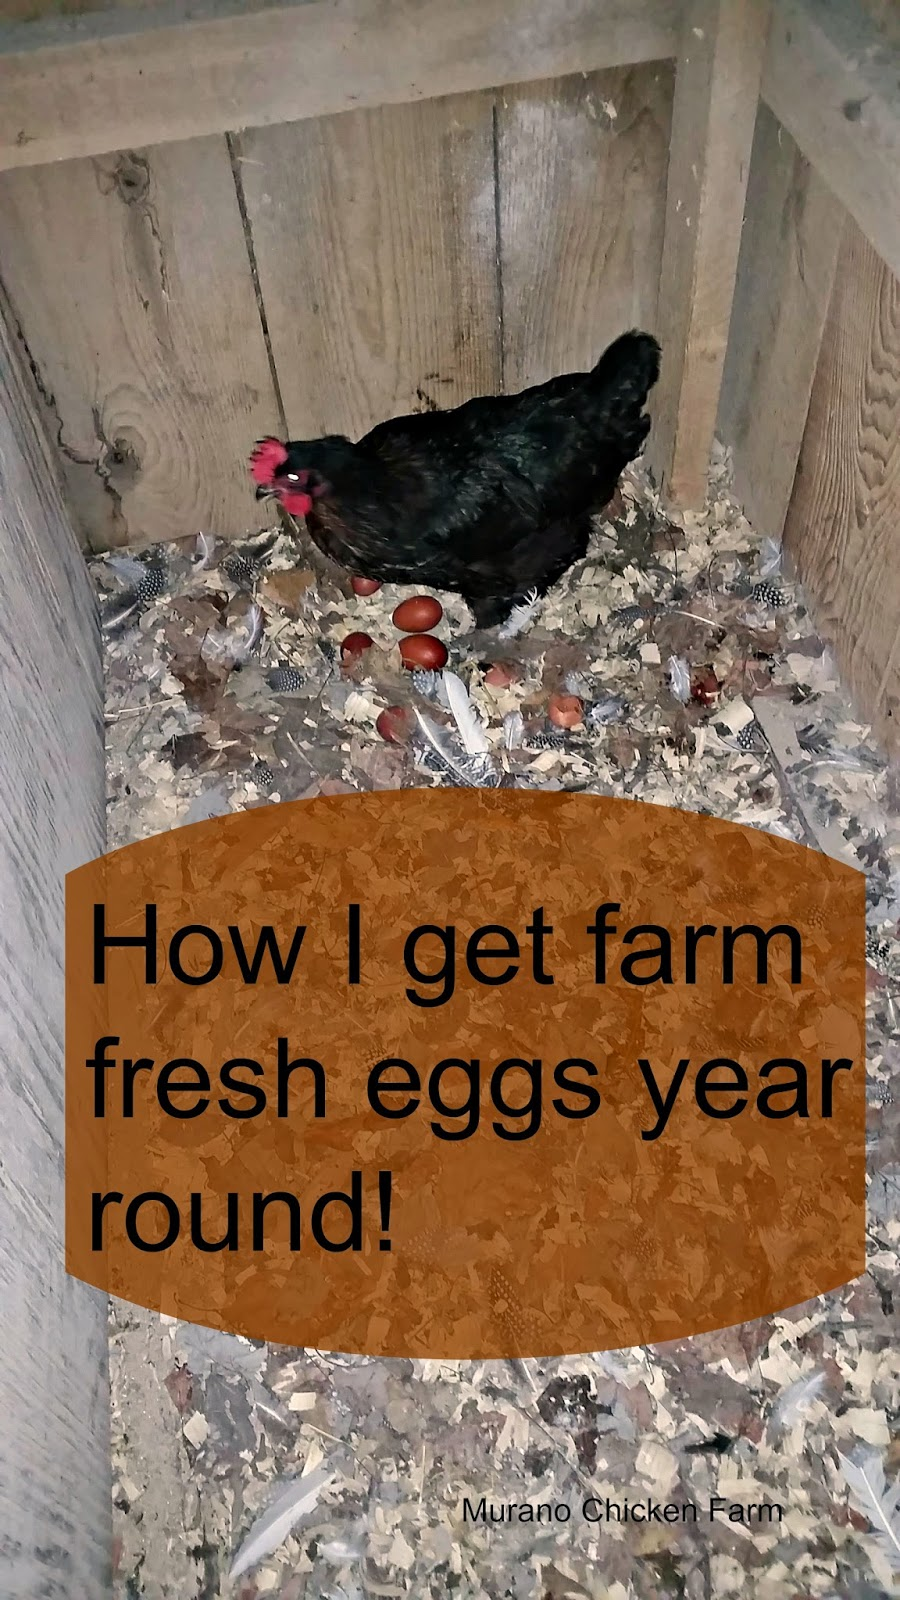 Farm fresh eggs year round